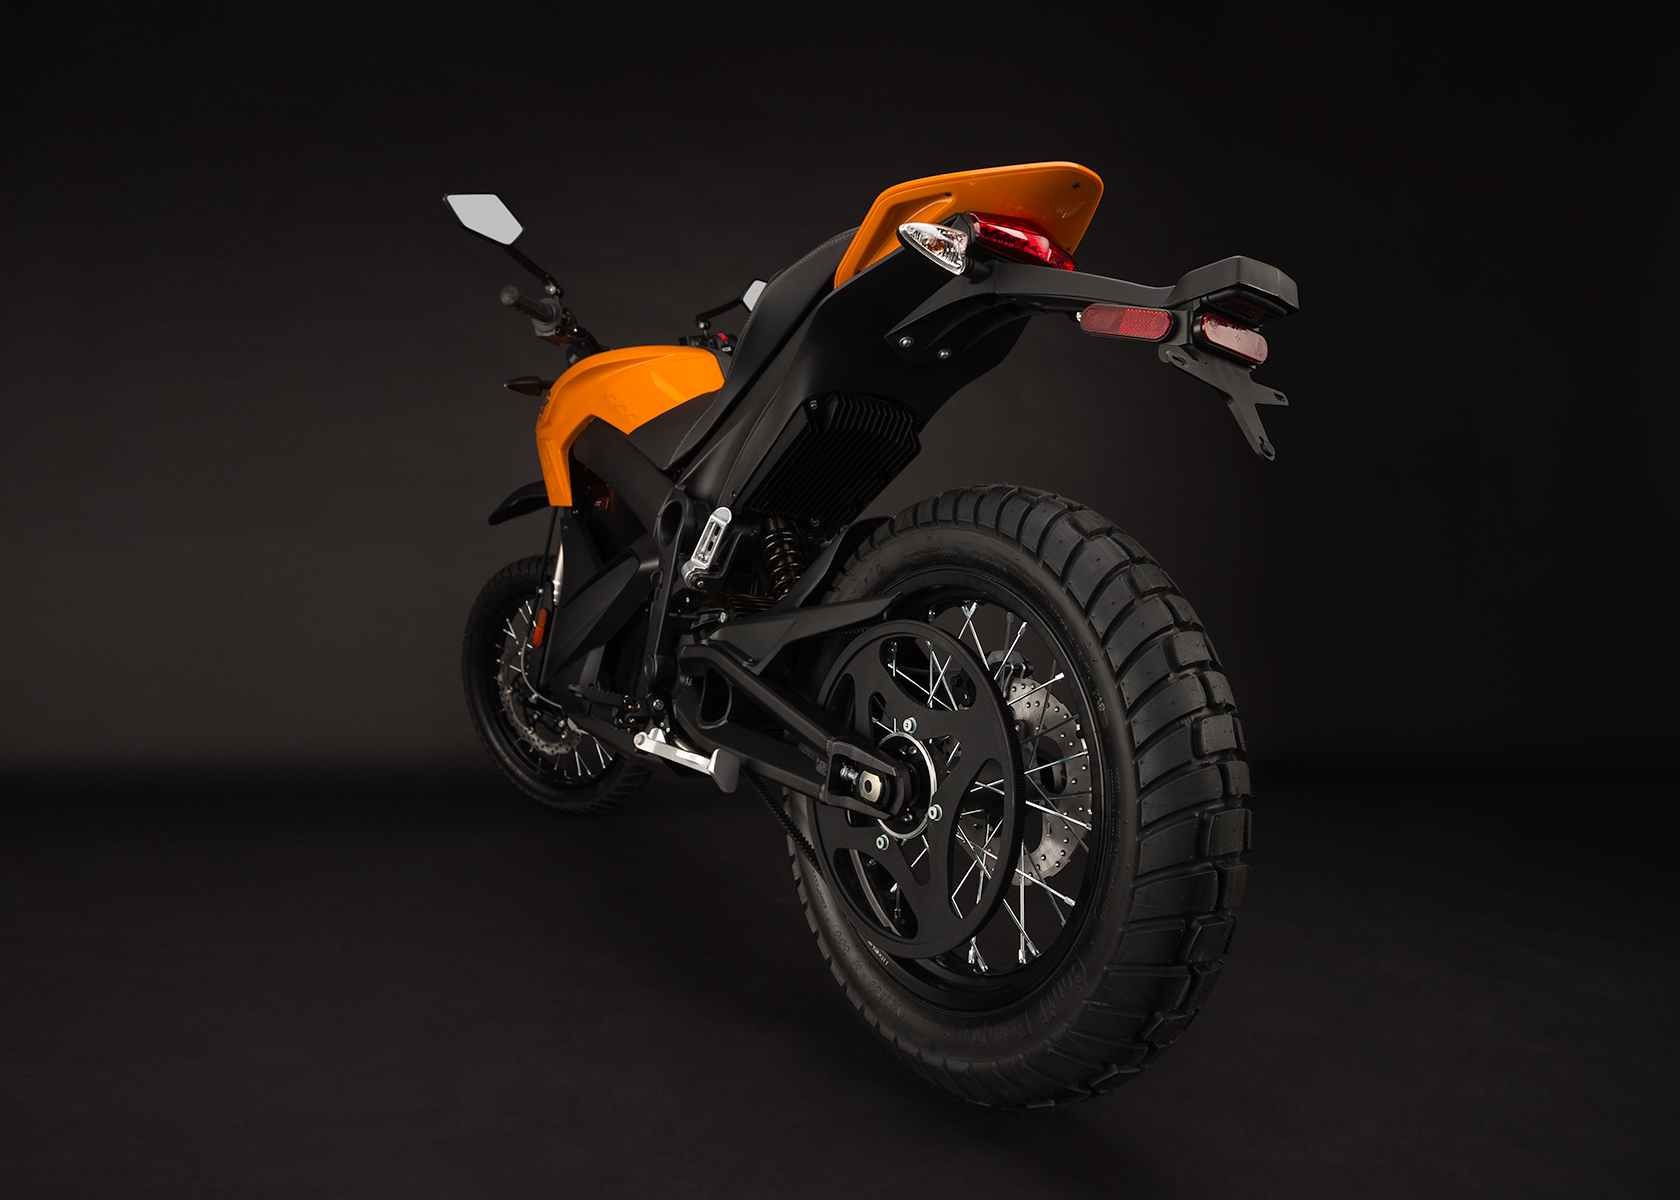 2014 Zero DS Electric Motorcycle: Belt Drive